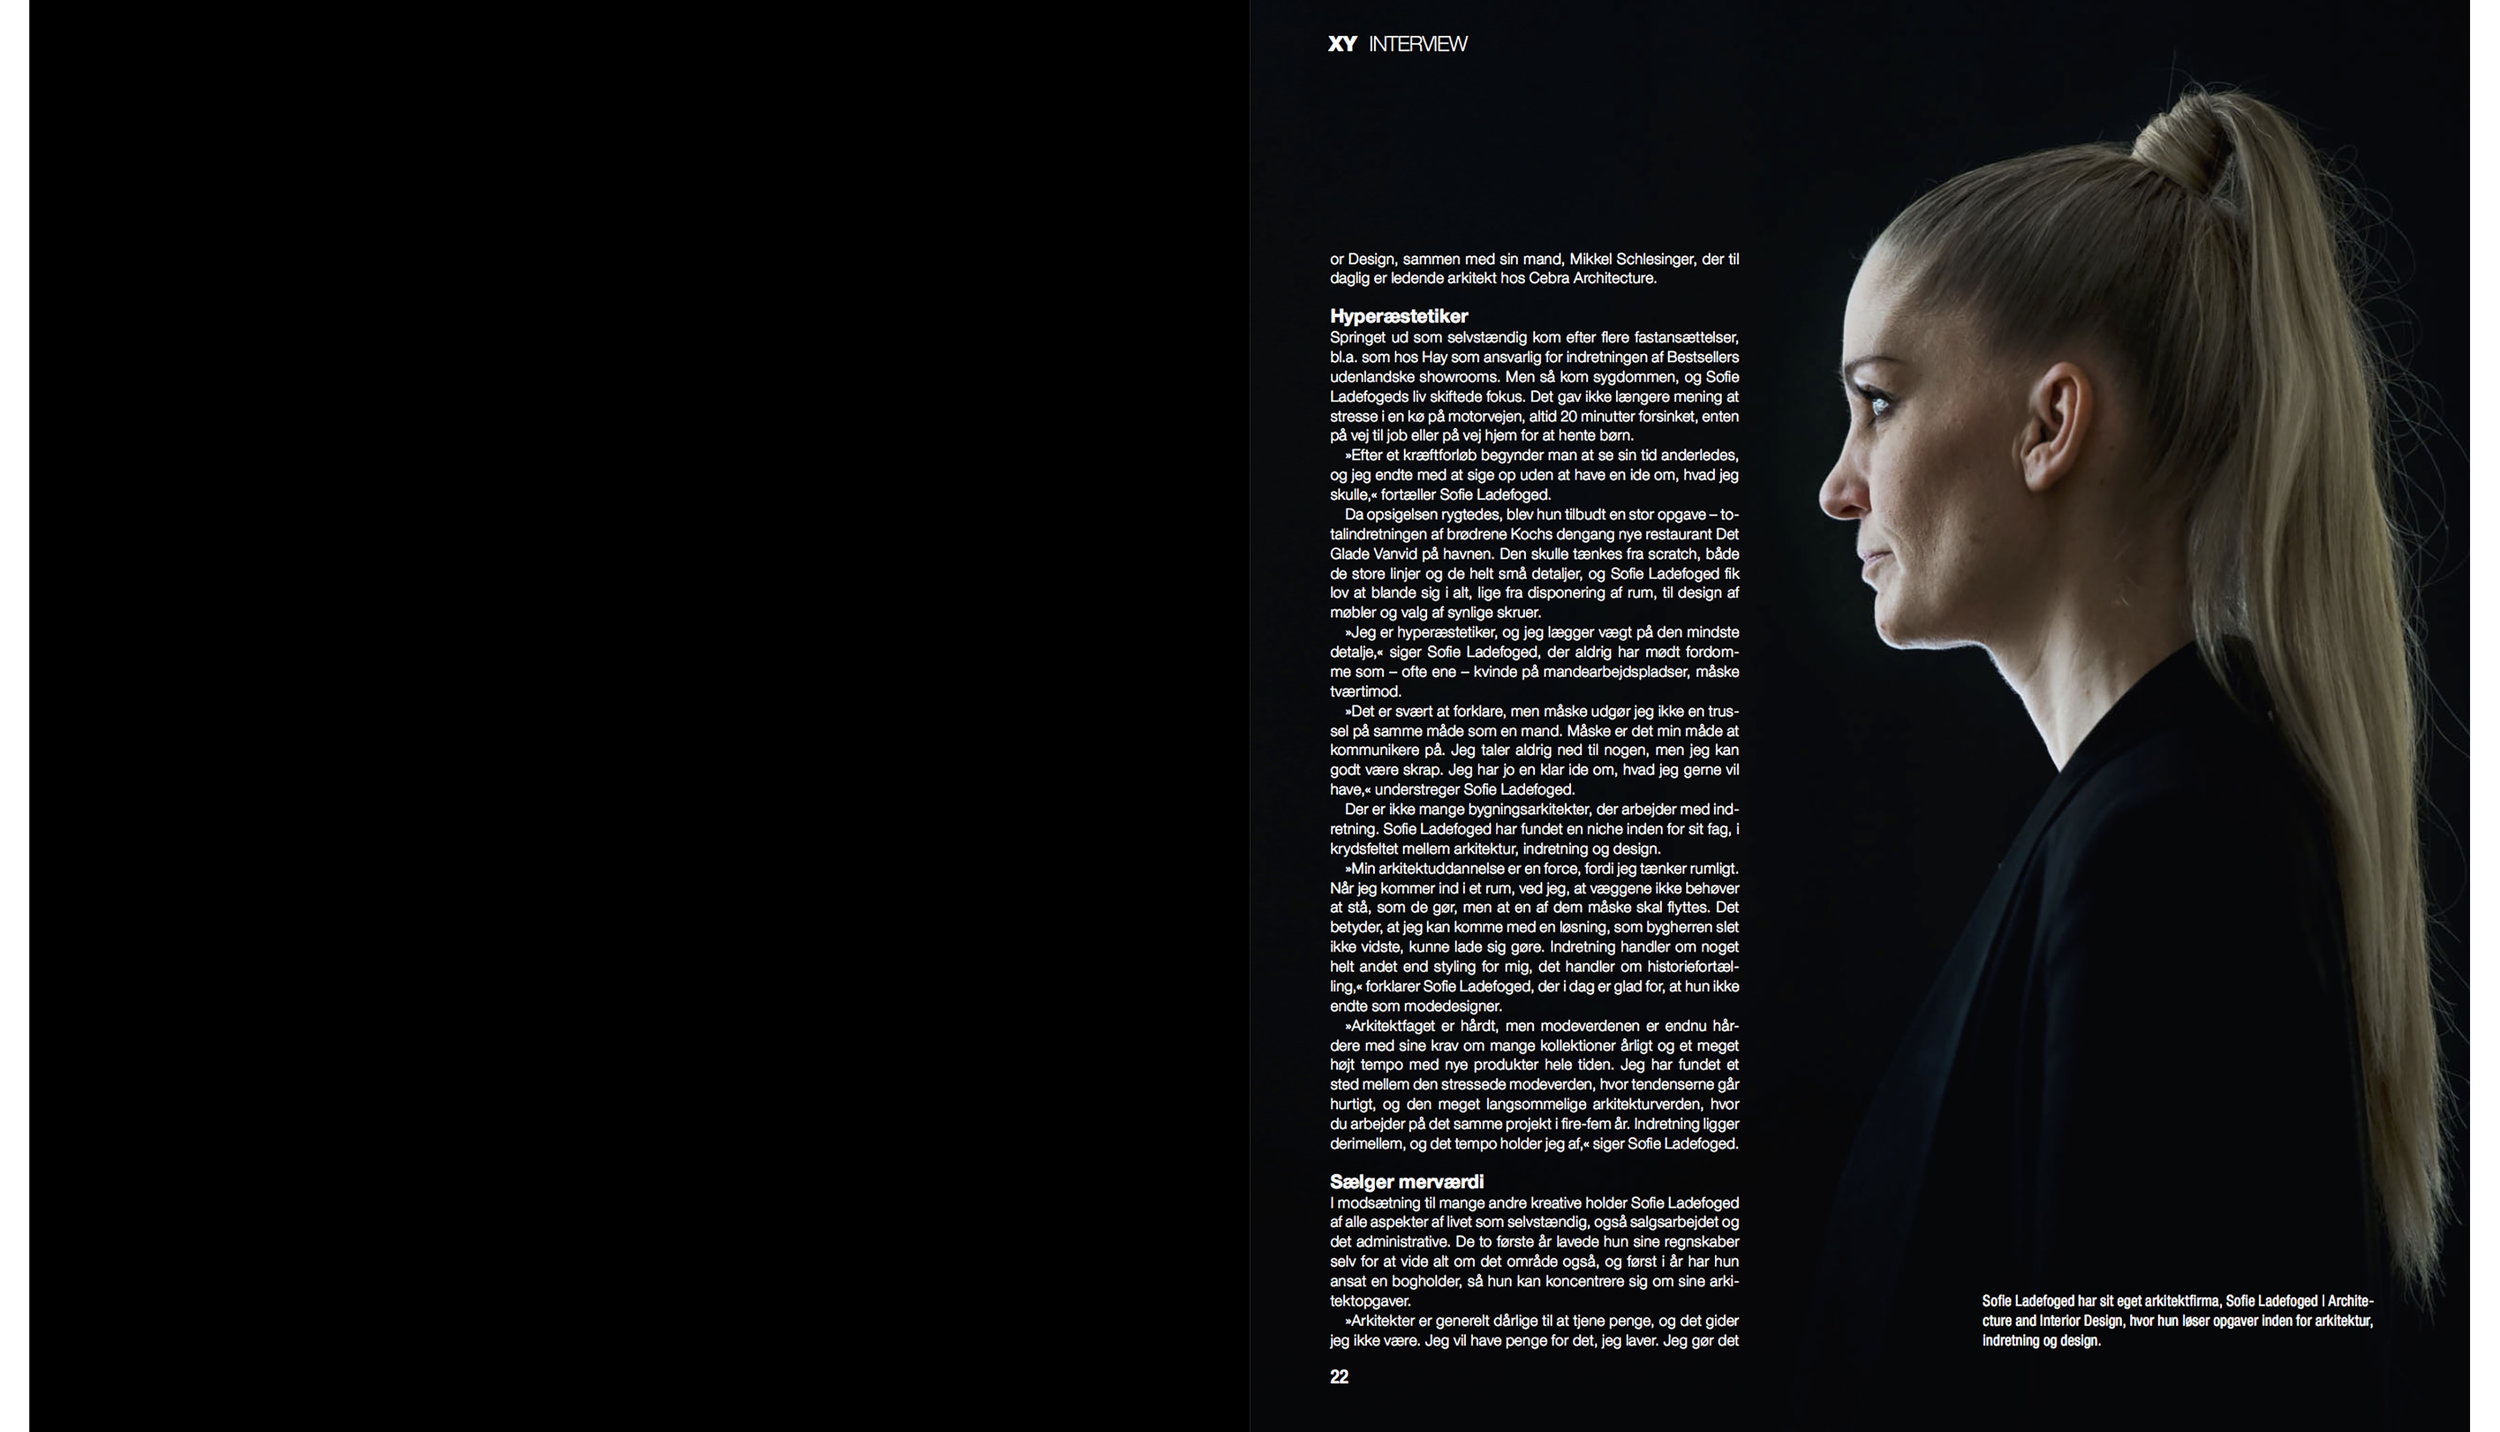 sofie-ladefoged-press-magasinet-xy-2015-page-03.jpg